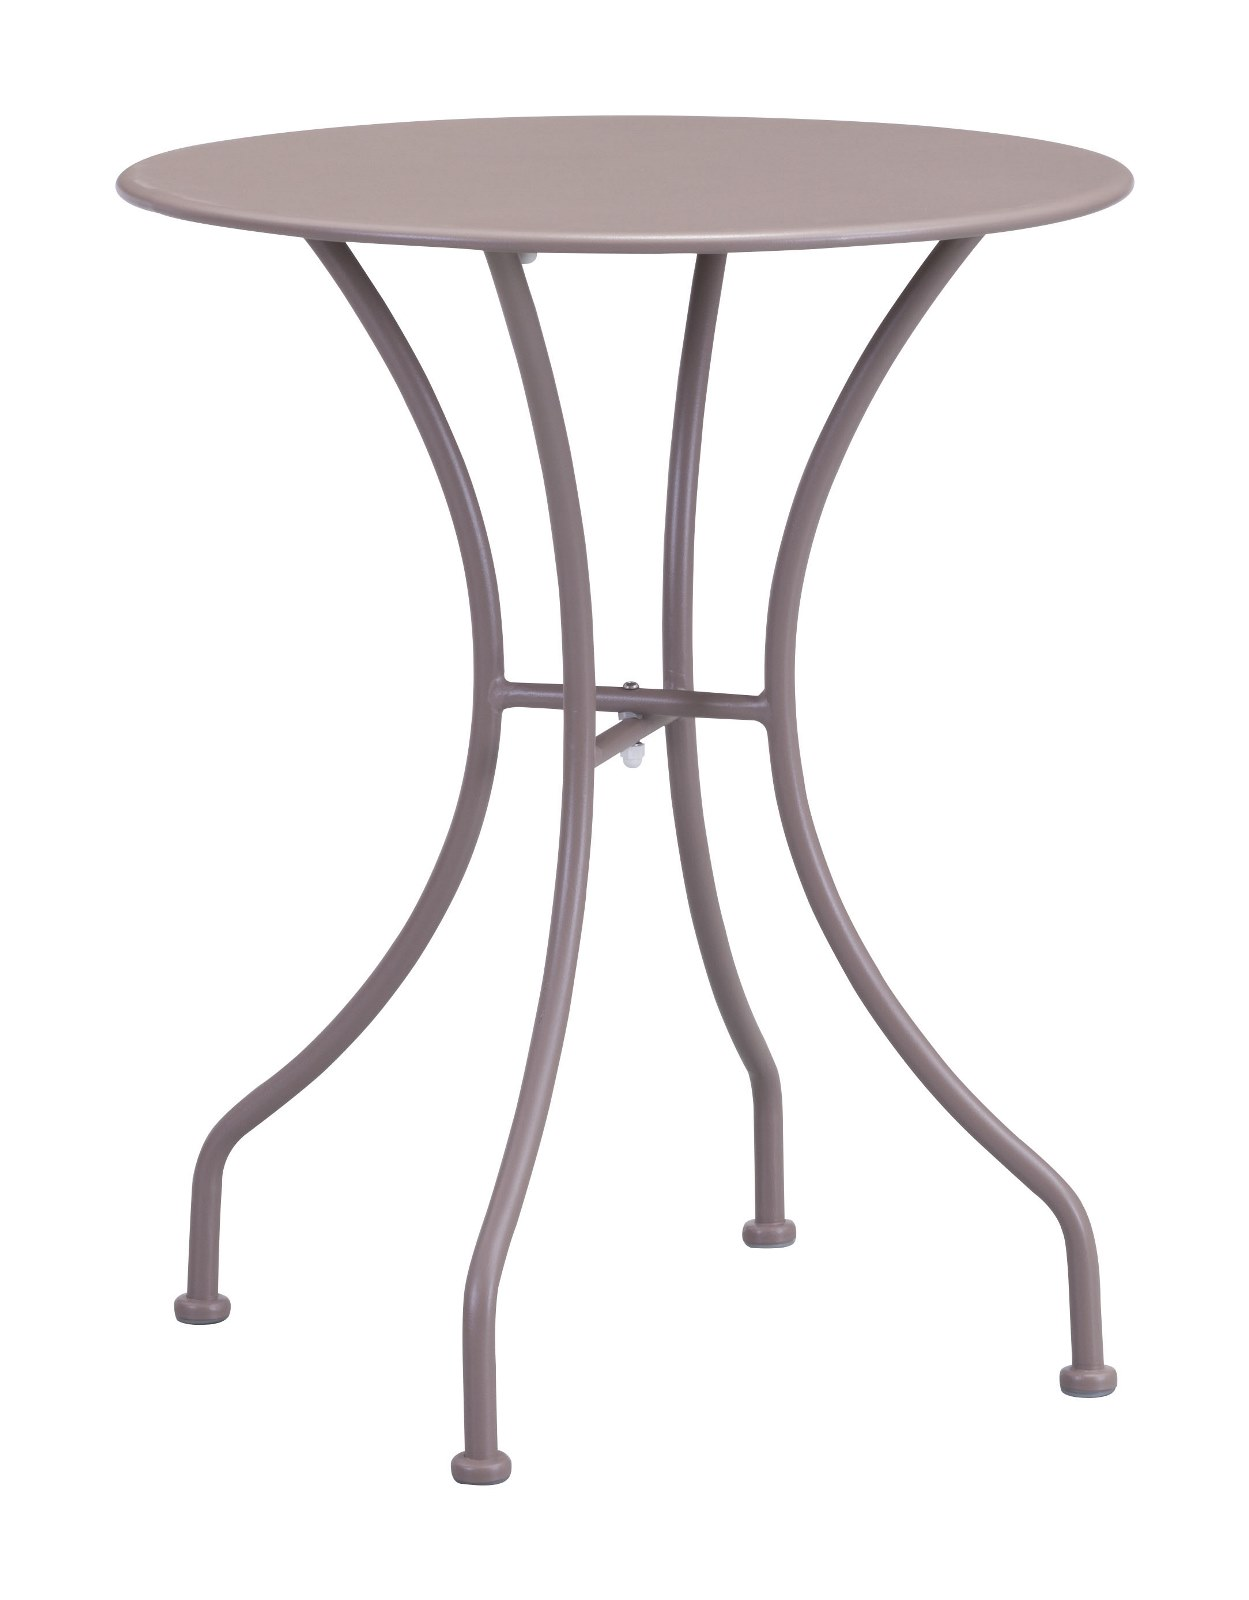 modern outdoor patio dining round table beige metal